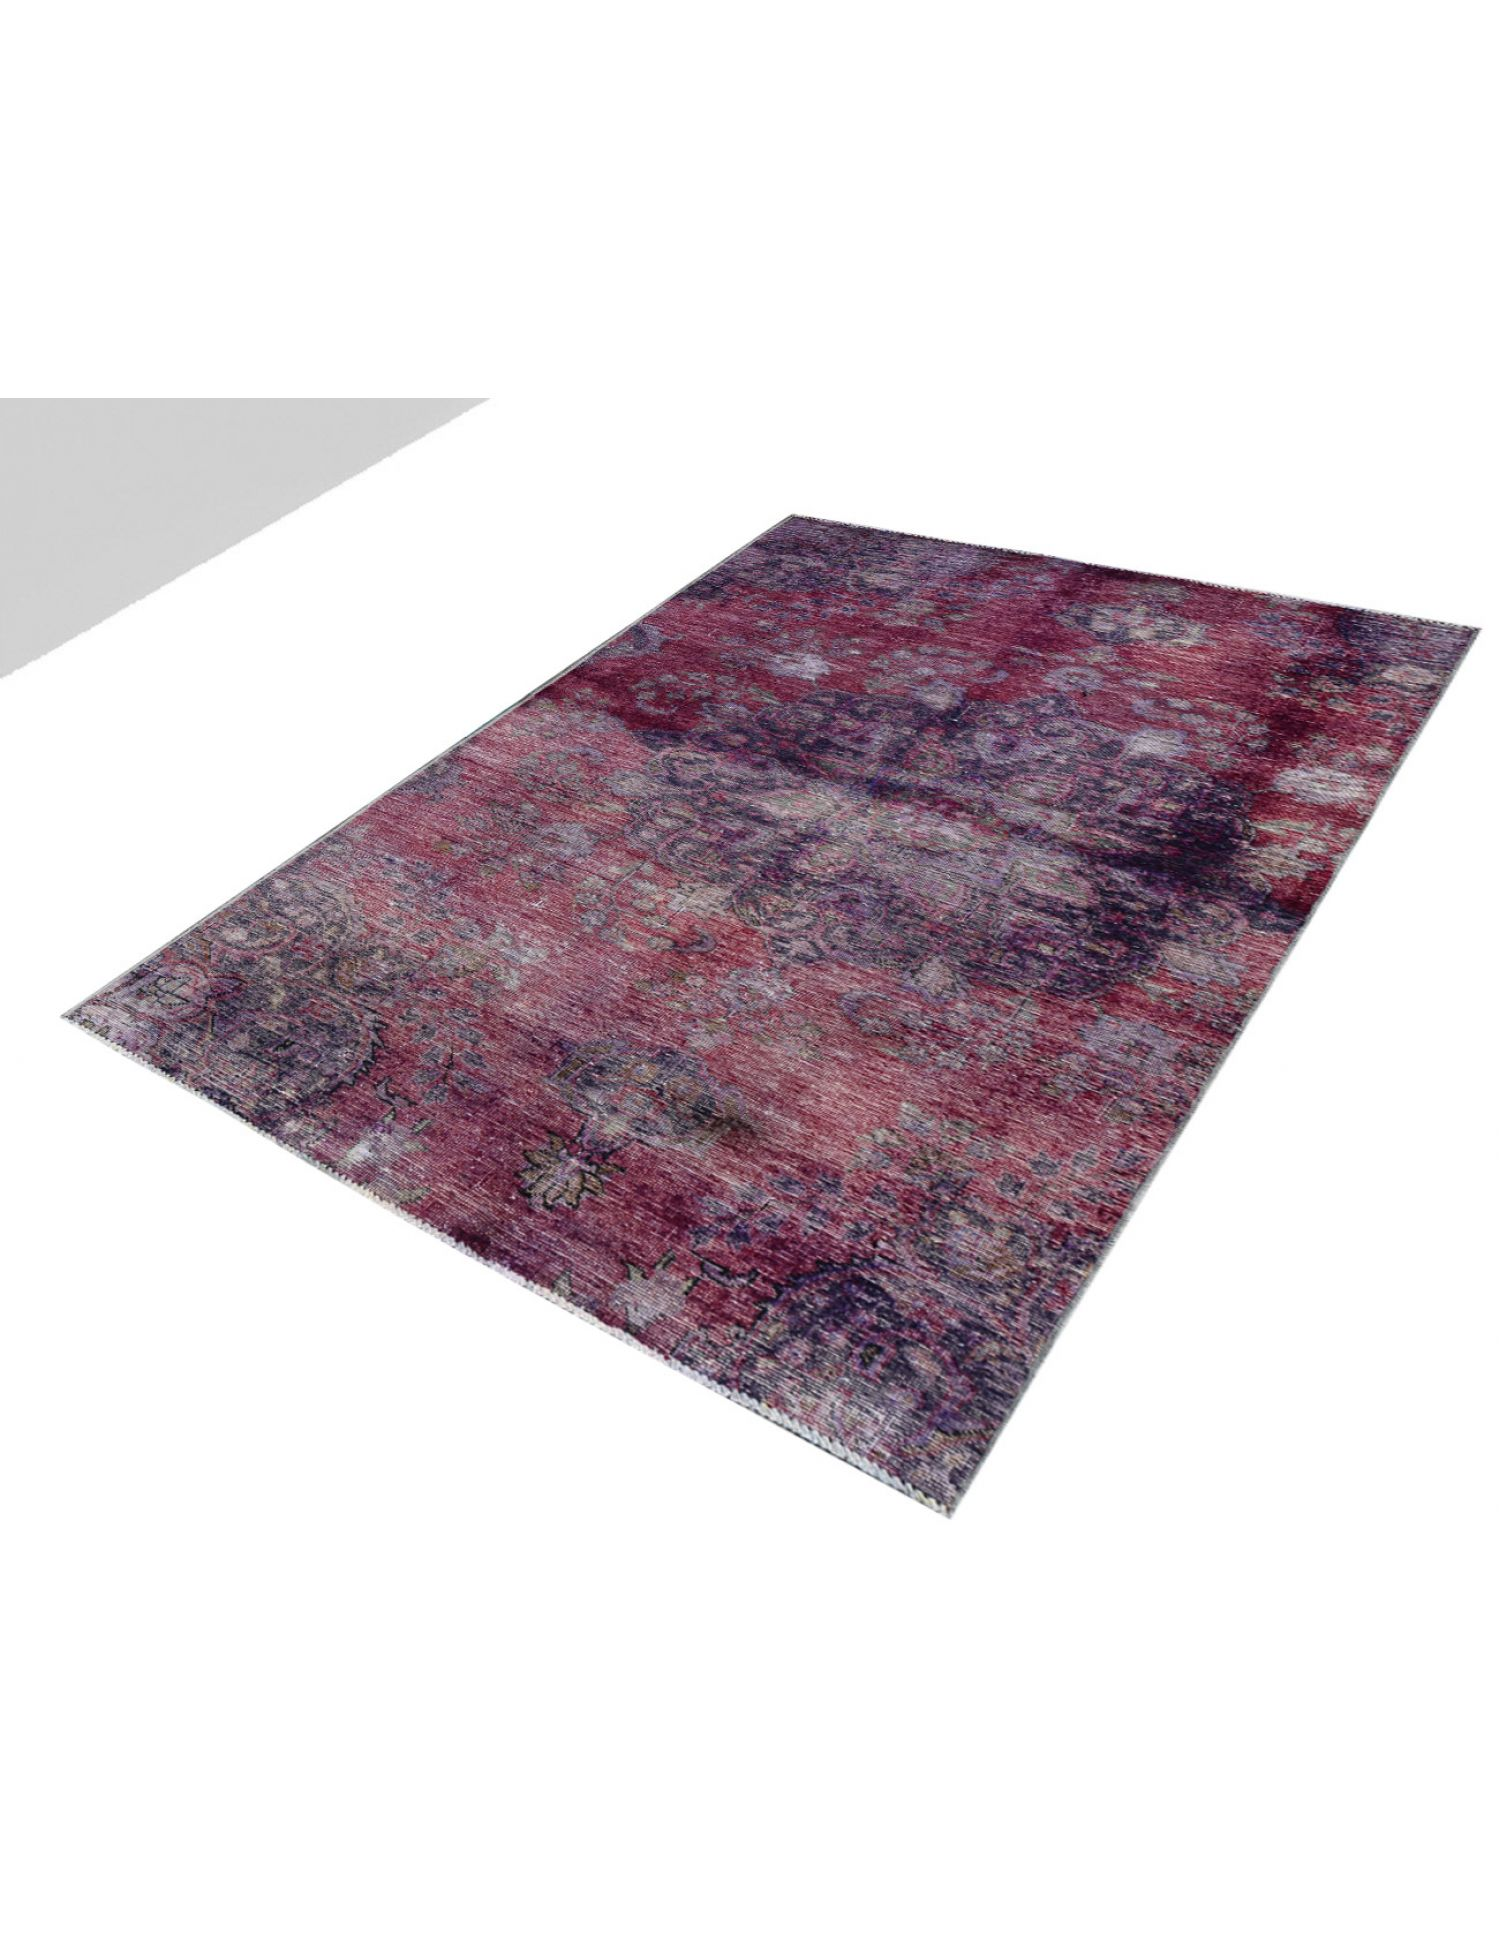 Vintage Carpet  purple <br/>252 x 138 cm